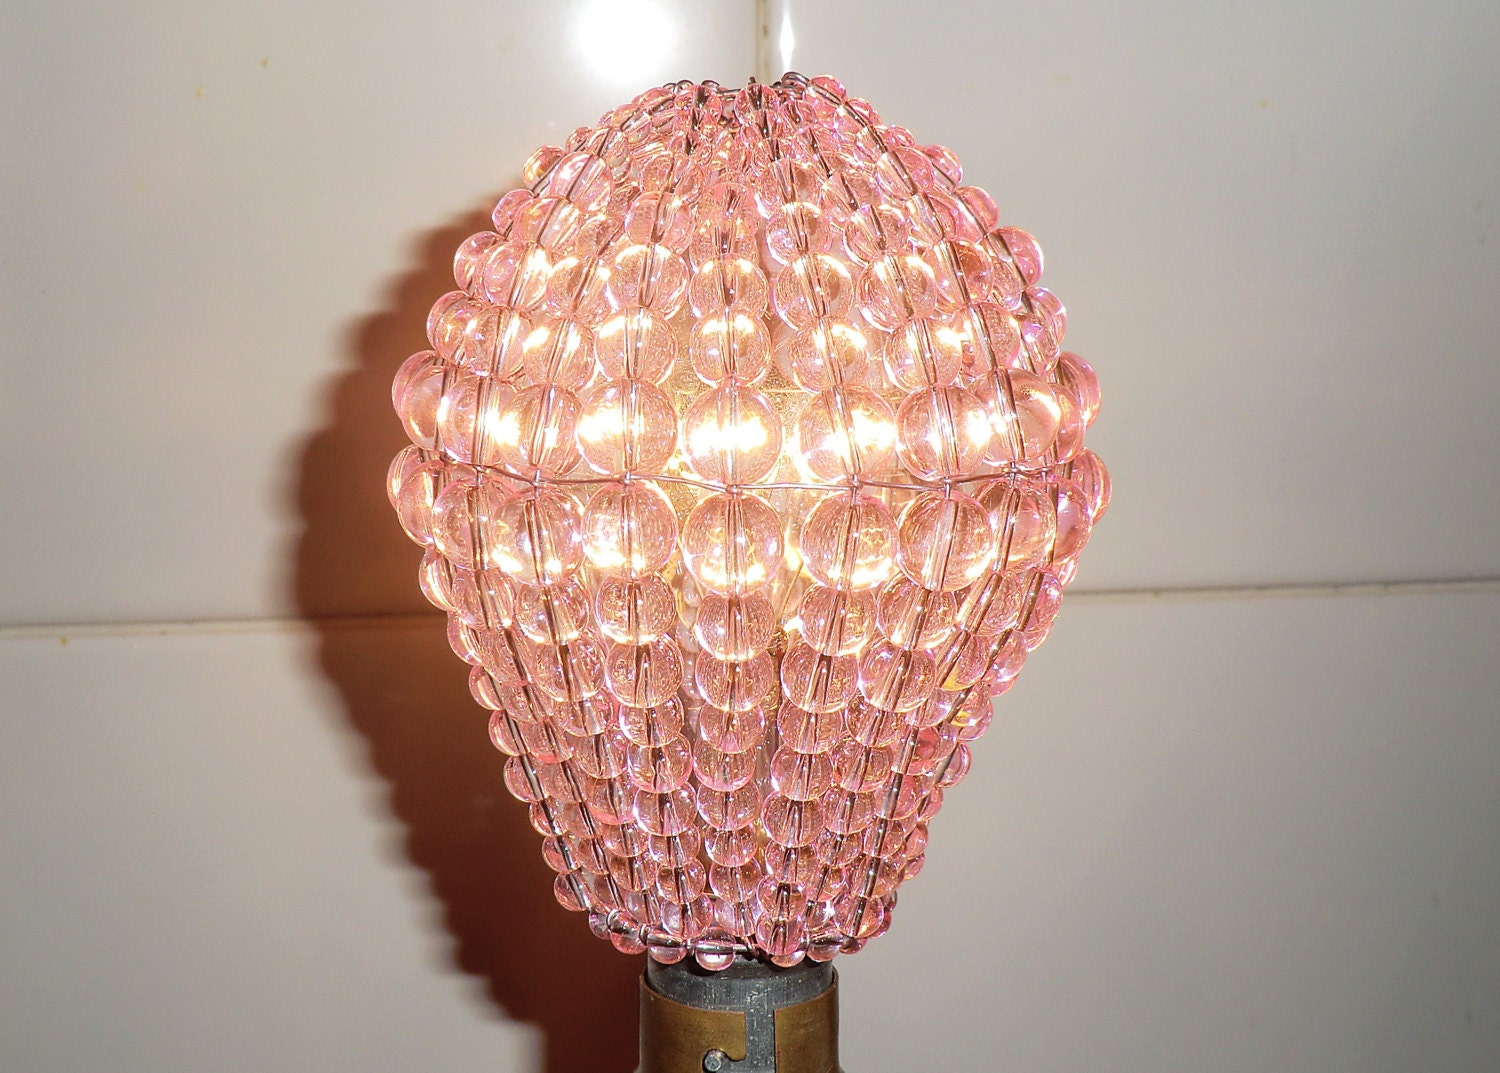 Crystal Chandelier Inspired Glass Bead Lightbulb GLS Bulb ...